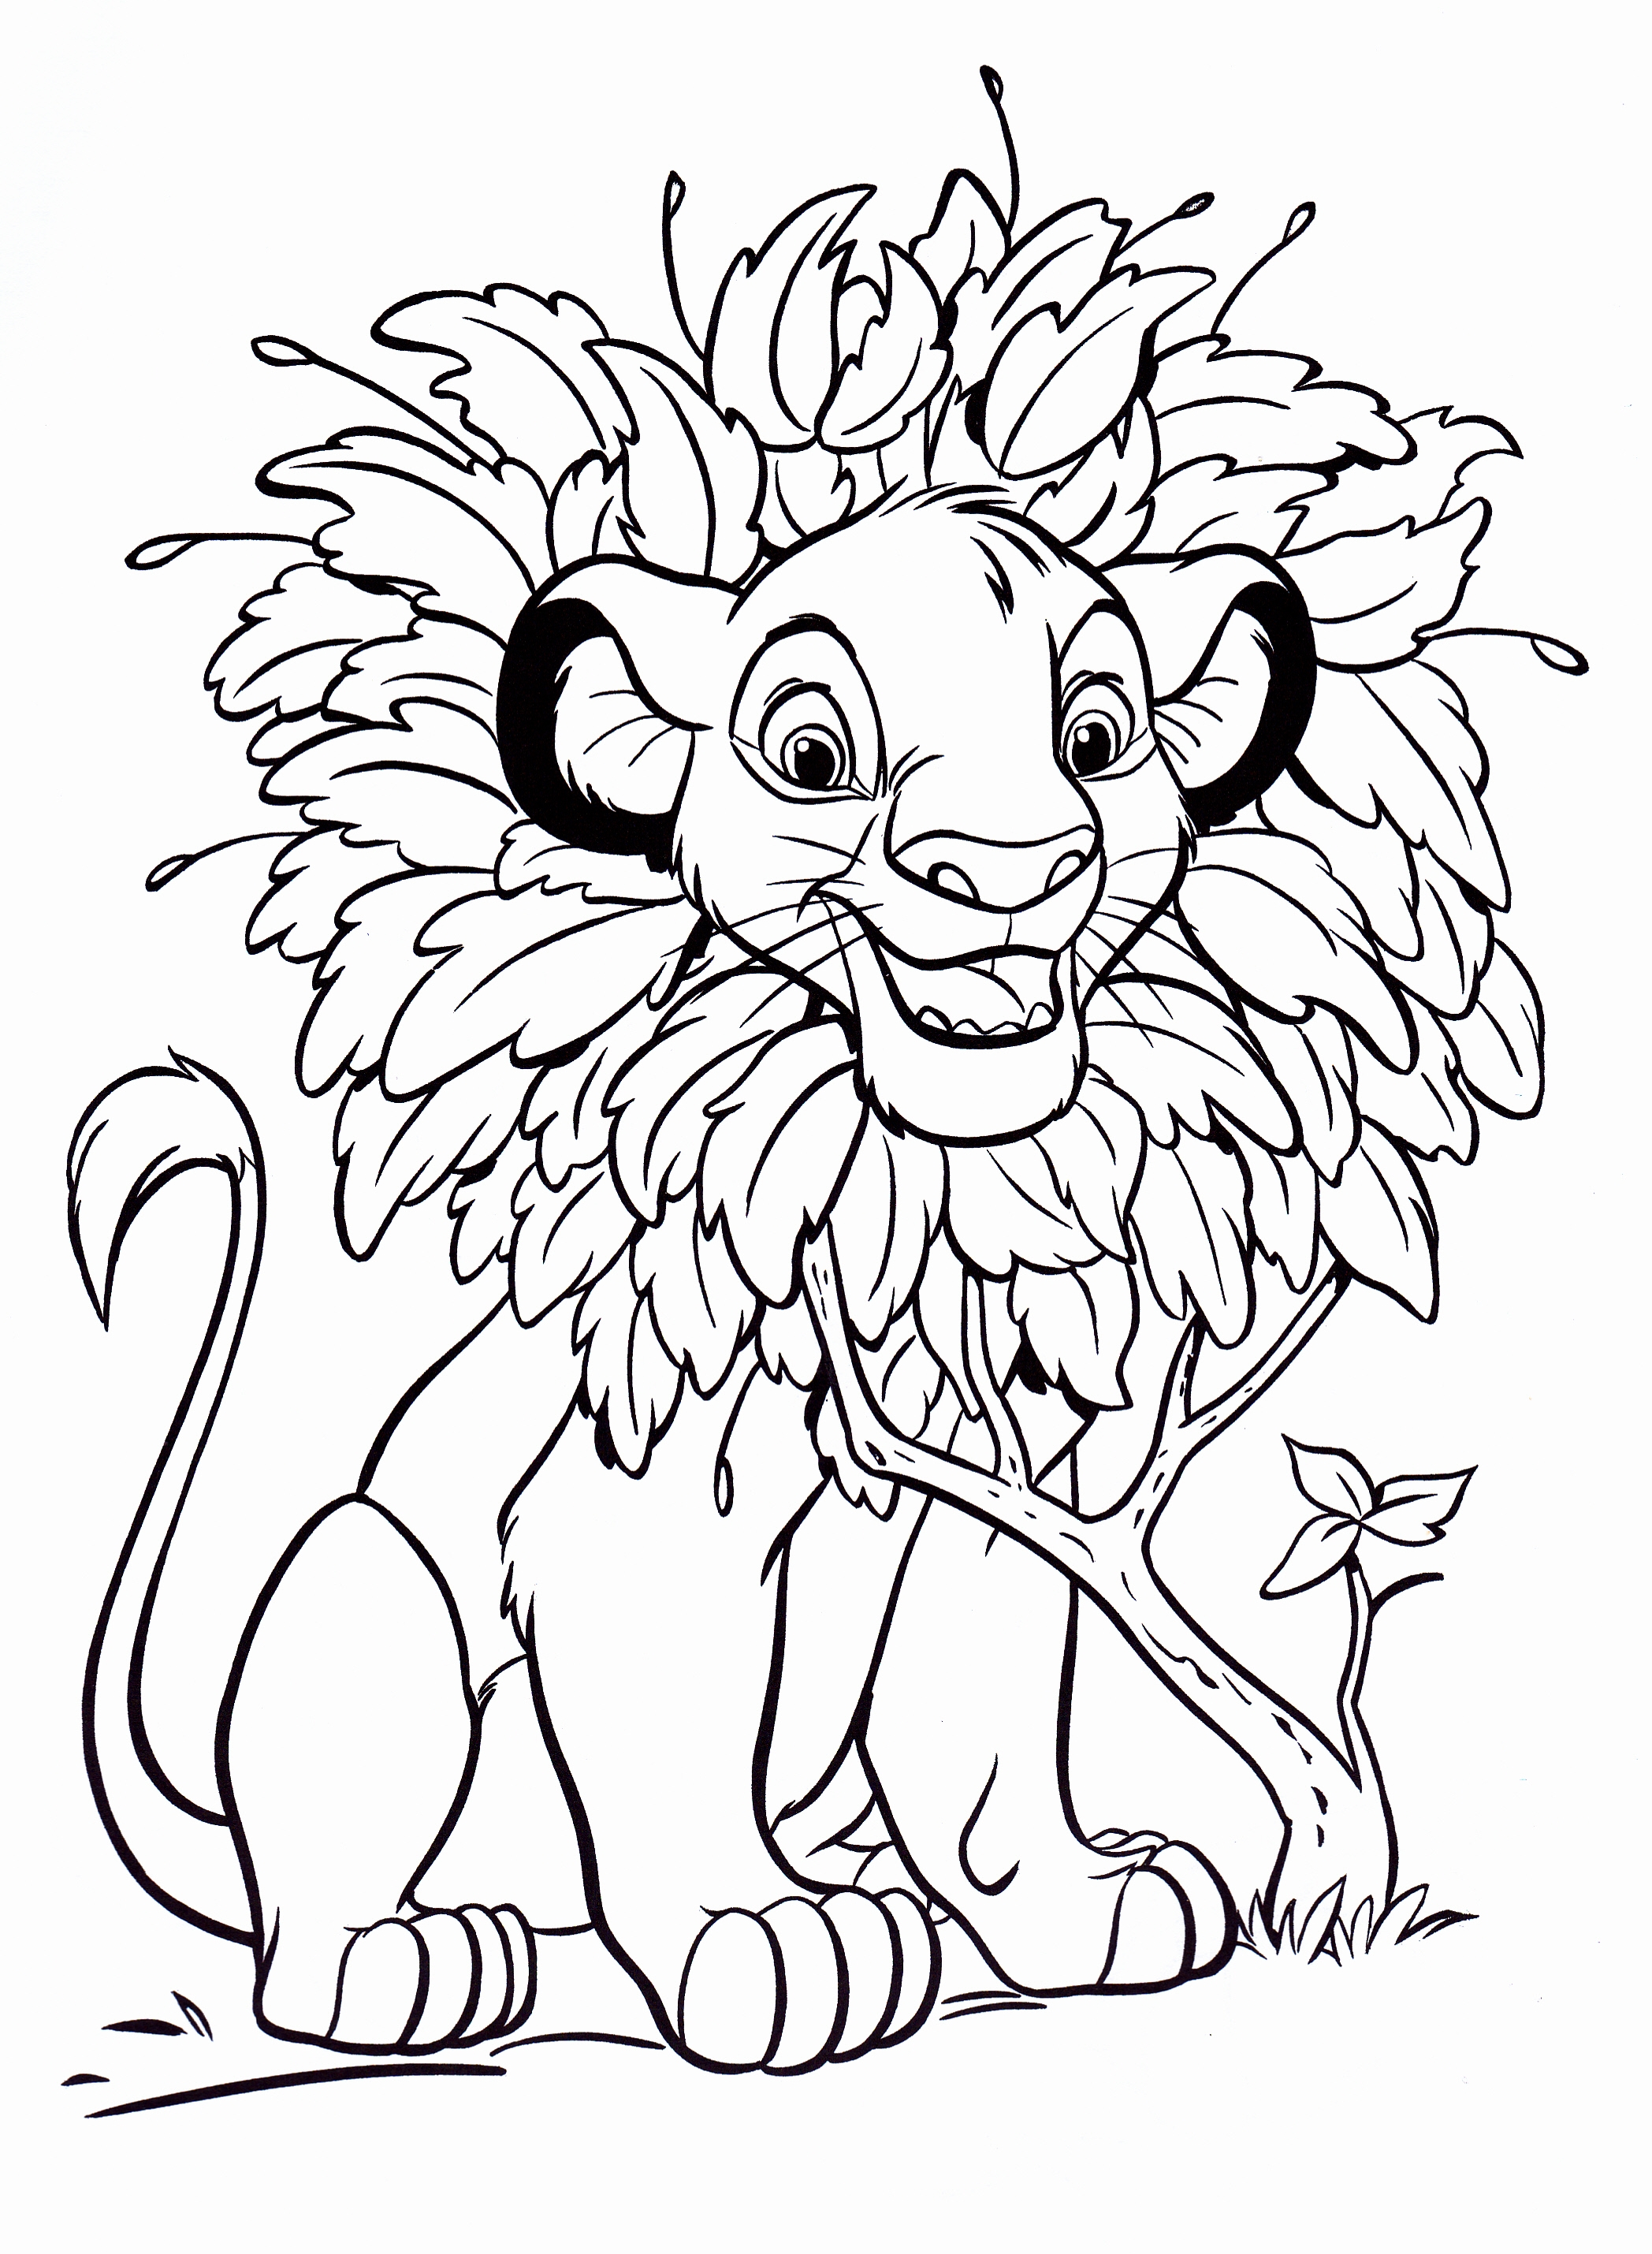 Disney coloring games for girls - Disney Coloring Pages 9 Coloring Kids